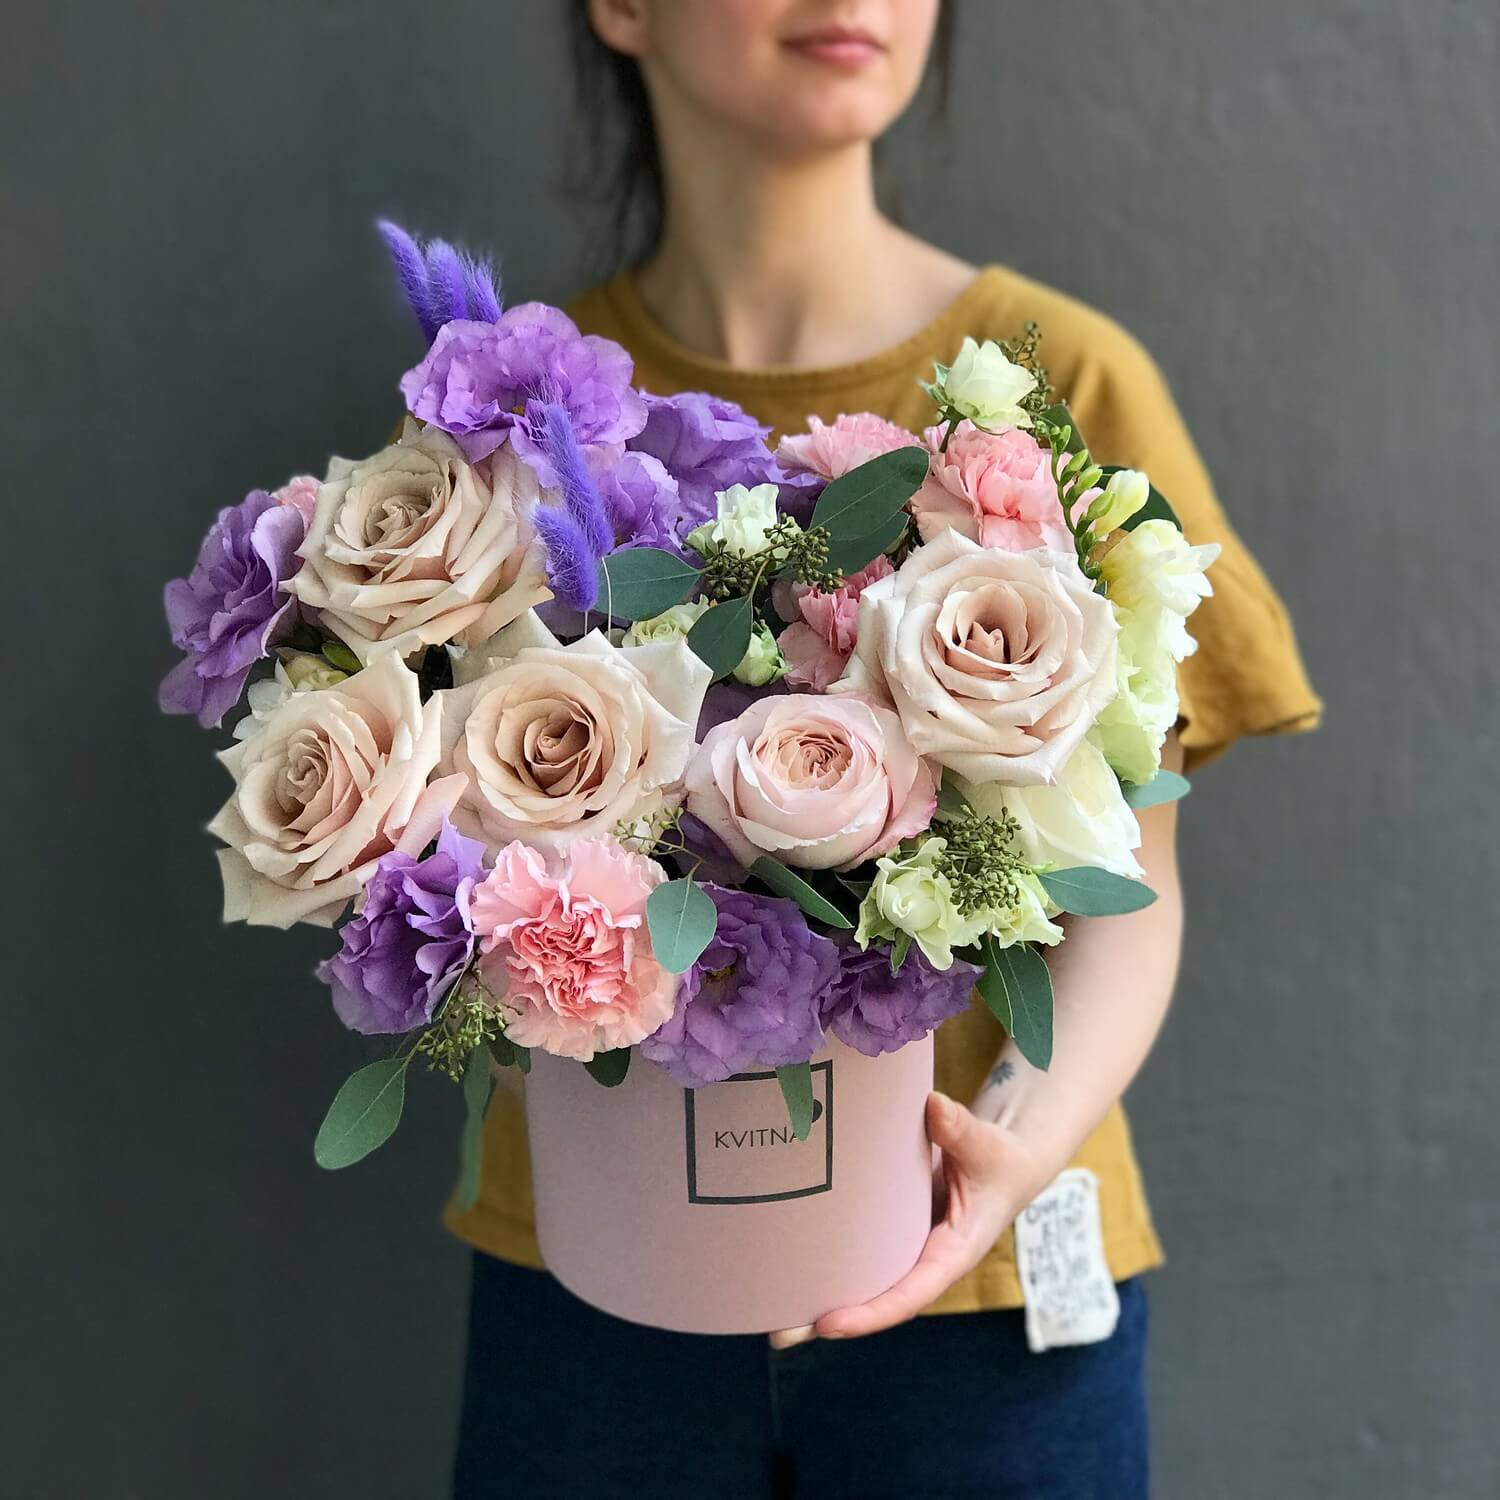 bouquet of flowers in a box